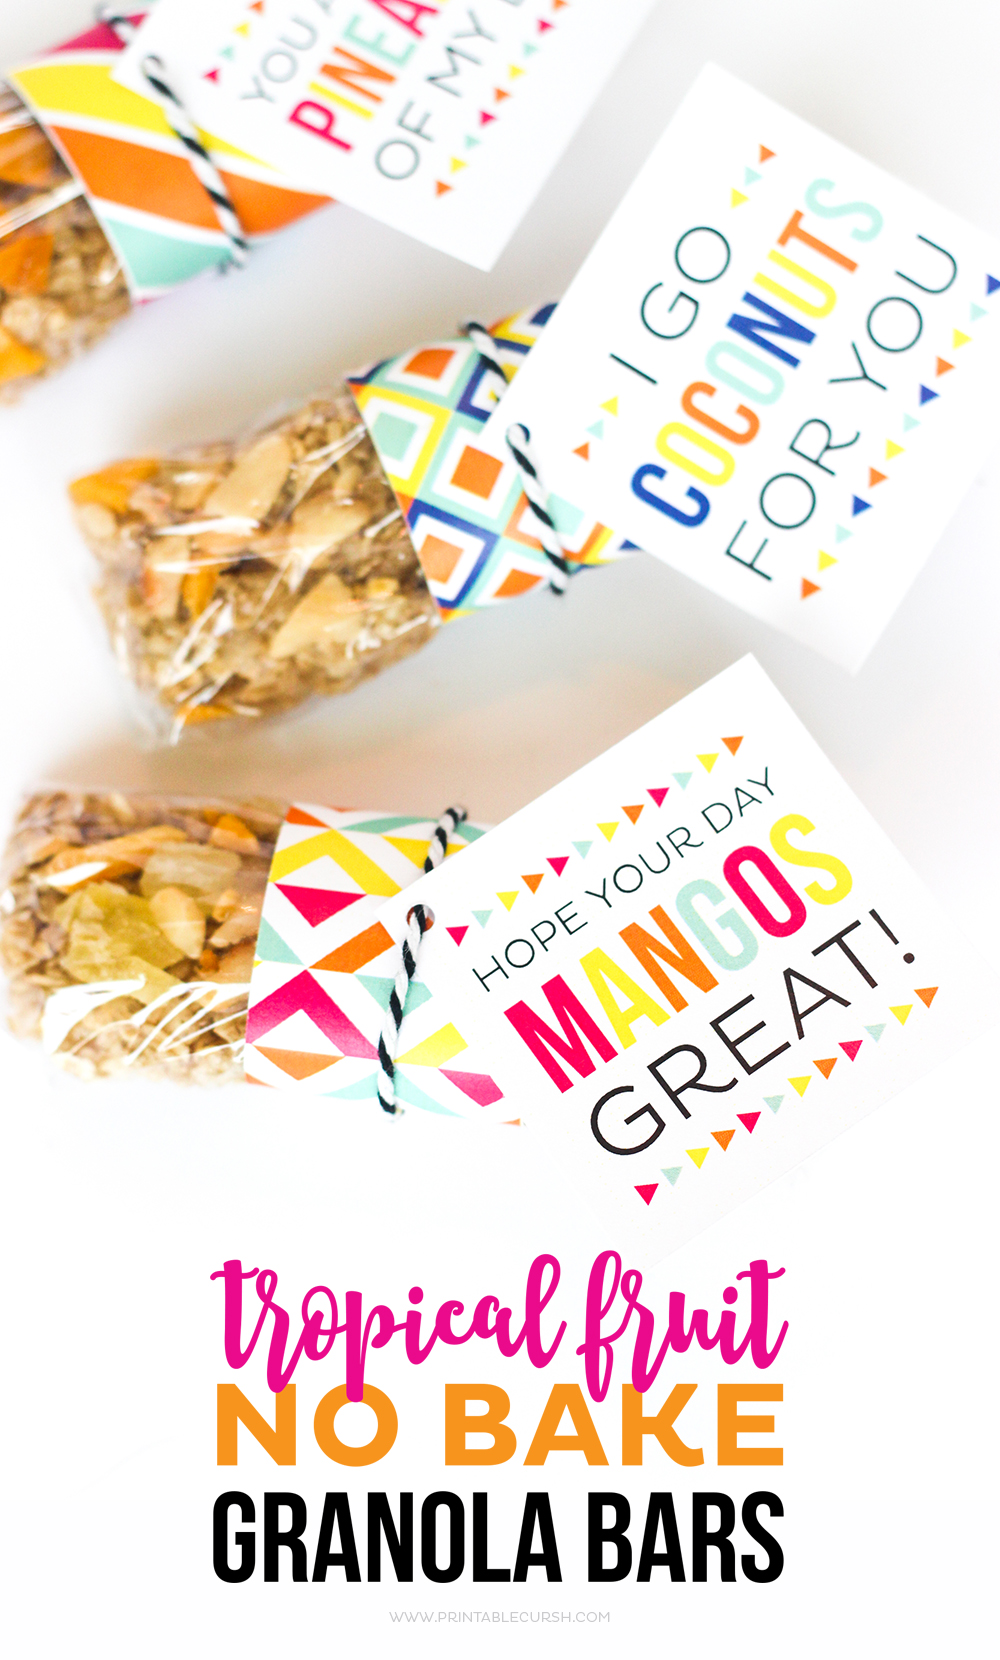 This Tropical Fruit No Bake Granola Bar recipe is great for breakfast or after school snacks! It's seriously the BEST granola bar ever! You can also download these cute lunch box printable gift tags to go with these!